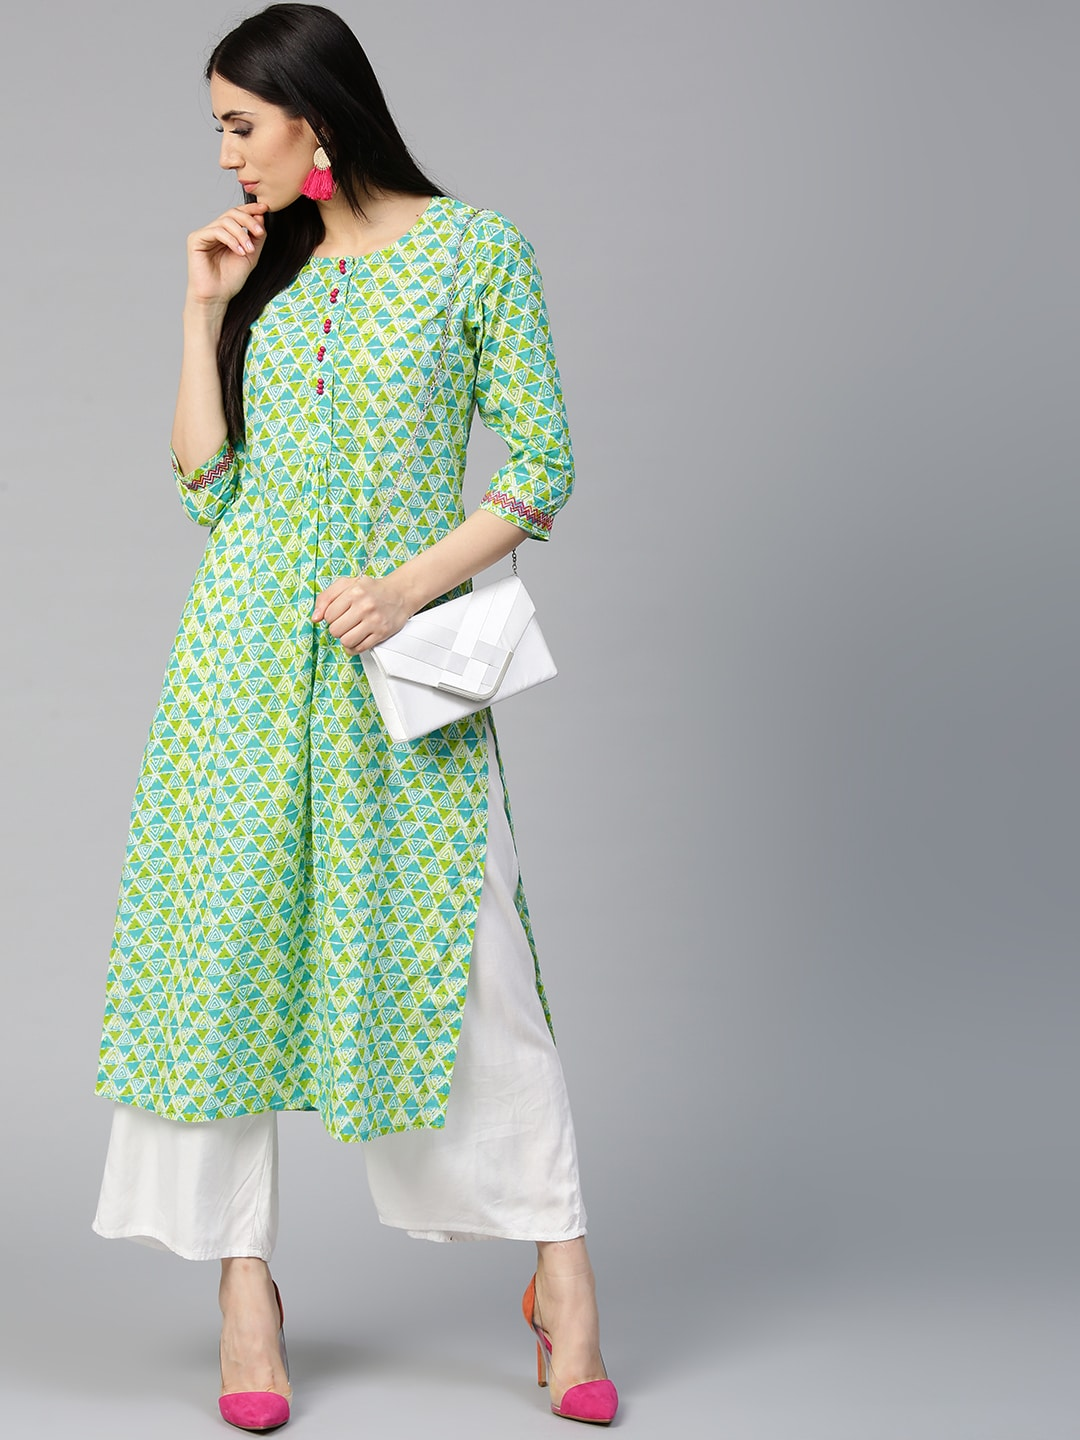 00fb18efe Kurtis Online - Buy Designer Kurtis   Suits for Women - Myntra